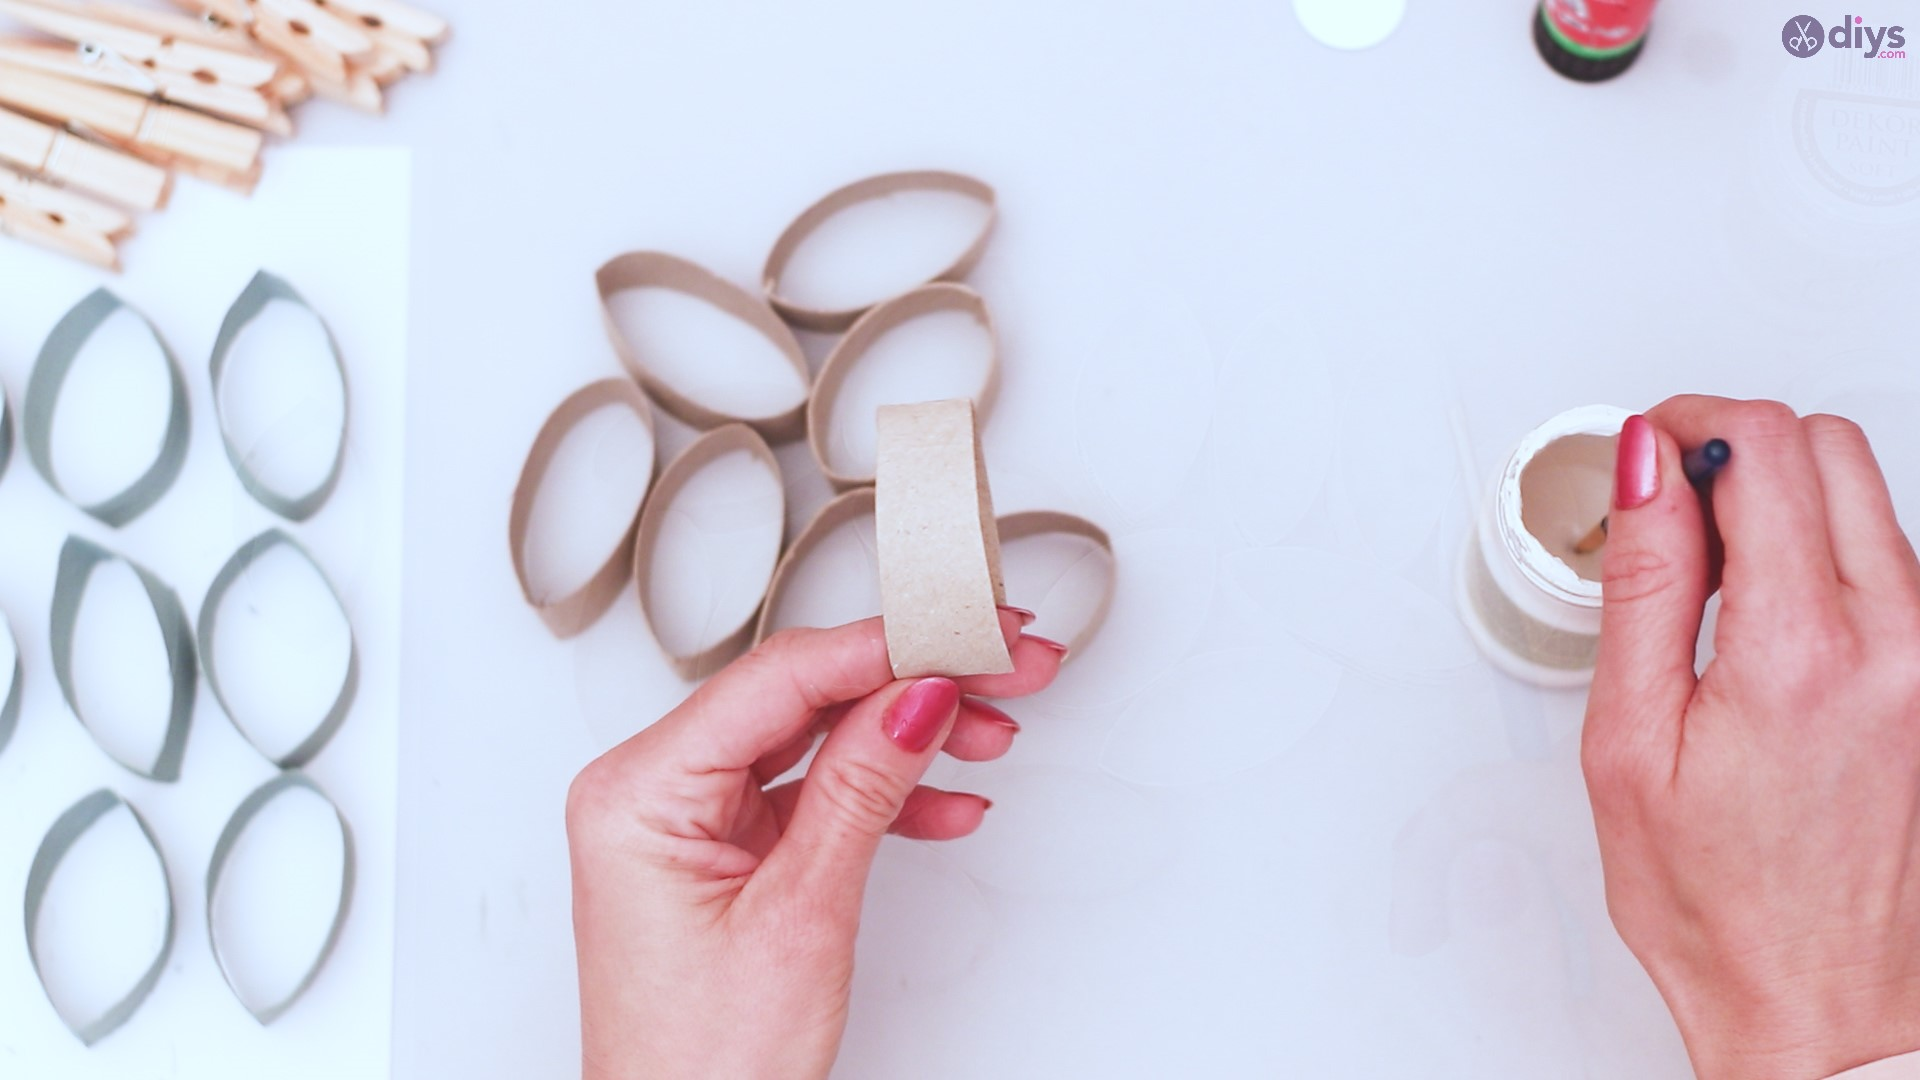 Toilet paper roll wall decor diy project (11)